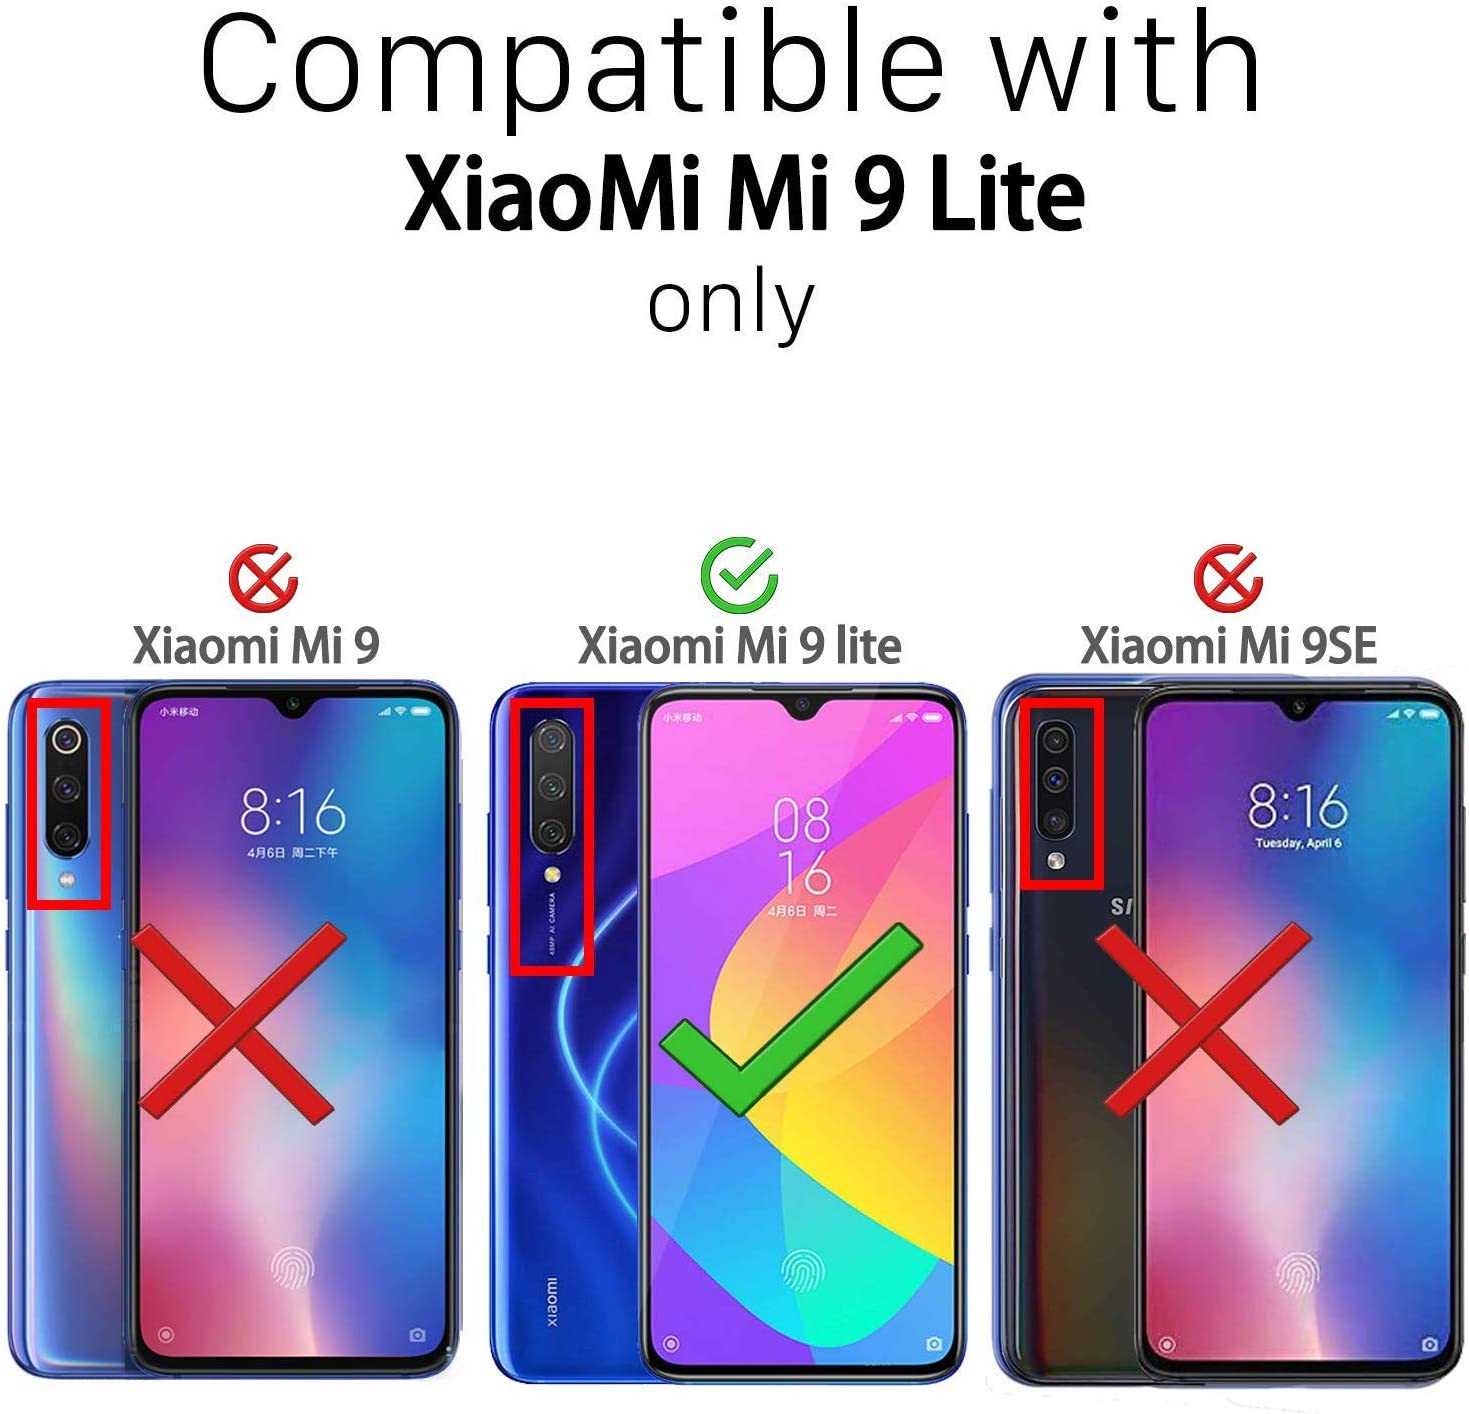 Glitter Crystal Compatible con Funda Xiaomi Mi 9 Lite, Brillo Bling Brillante Purpurina Diamantes Carcasa Ultrafino Suave Silicona TPU y Dura PC Bumper Case Cover: Amazon.es: Electrónica